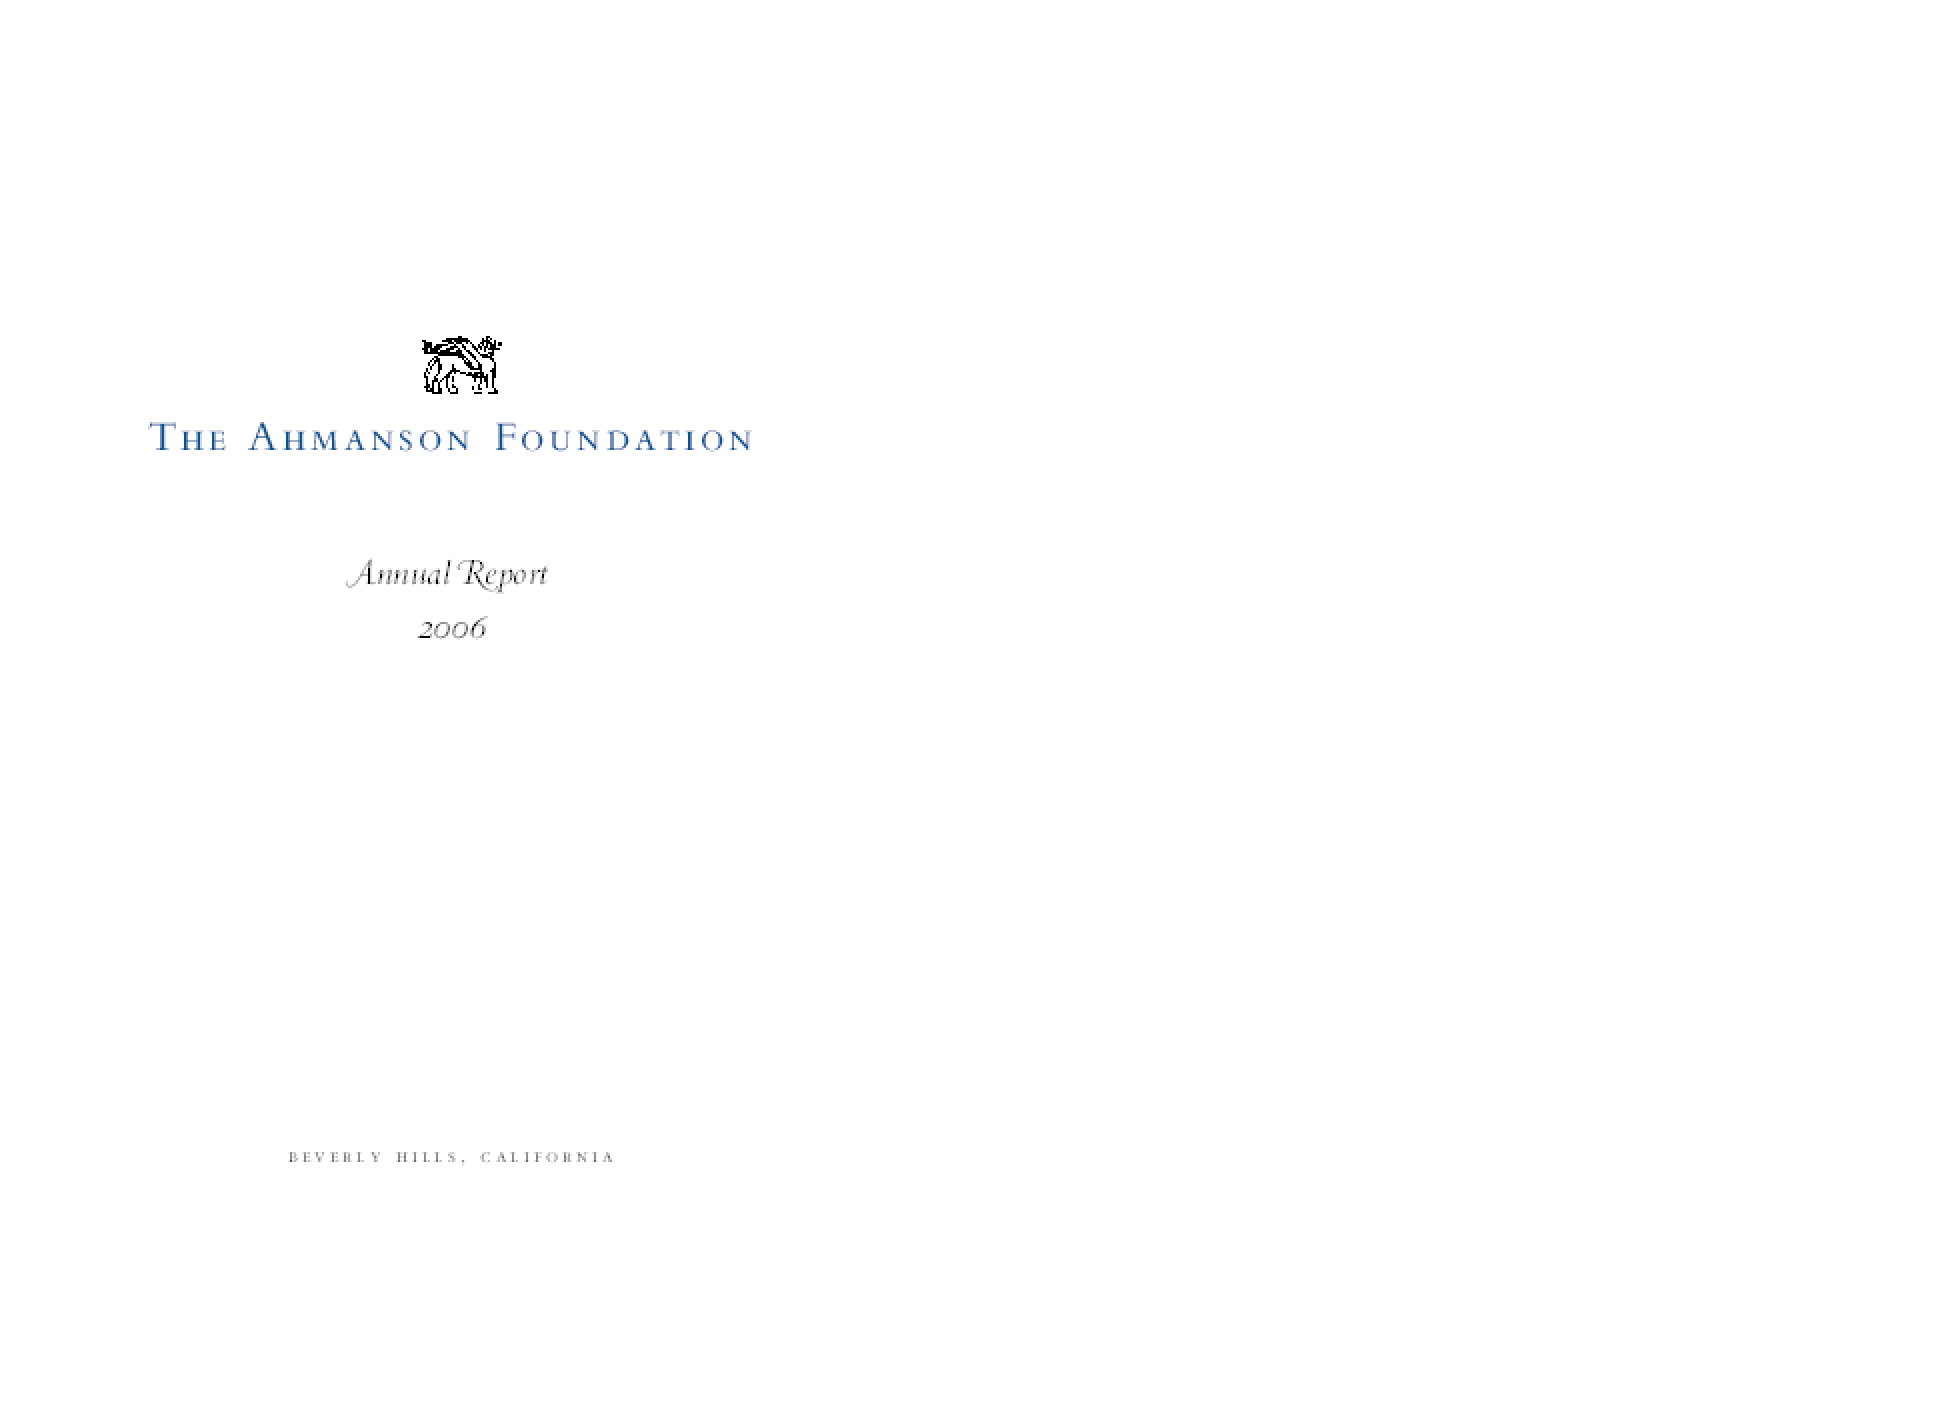 Ahmanson Foundation - 2006 Annual Report